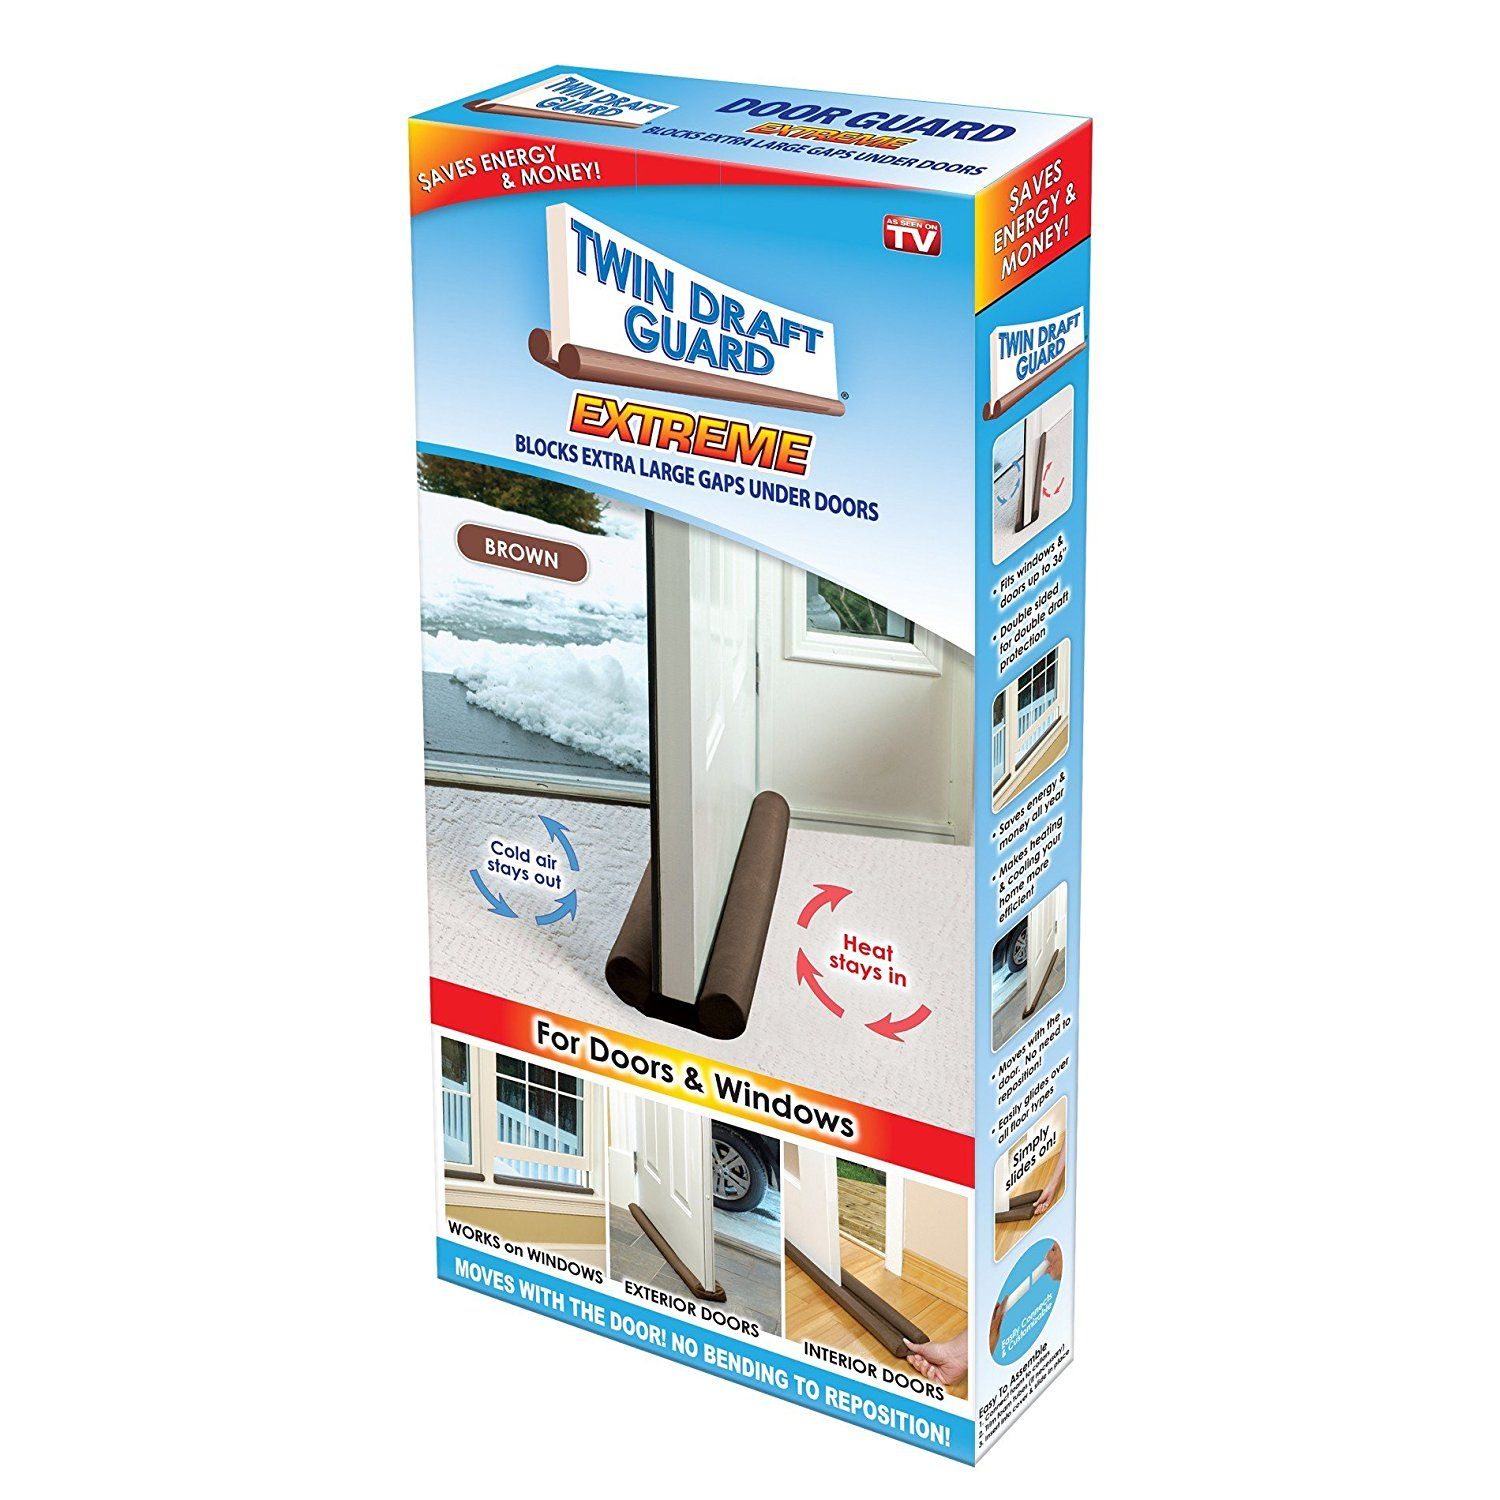 Twin Draft Guard Extreme In Brown Energy Saving Under Door Draft